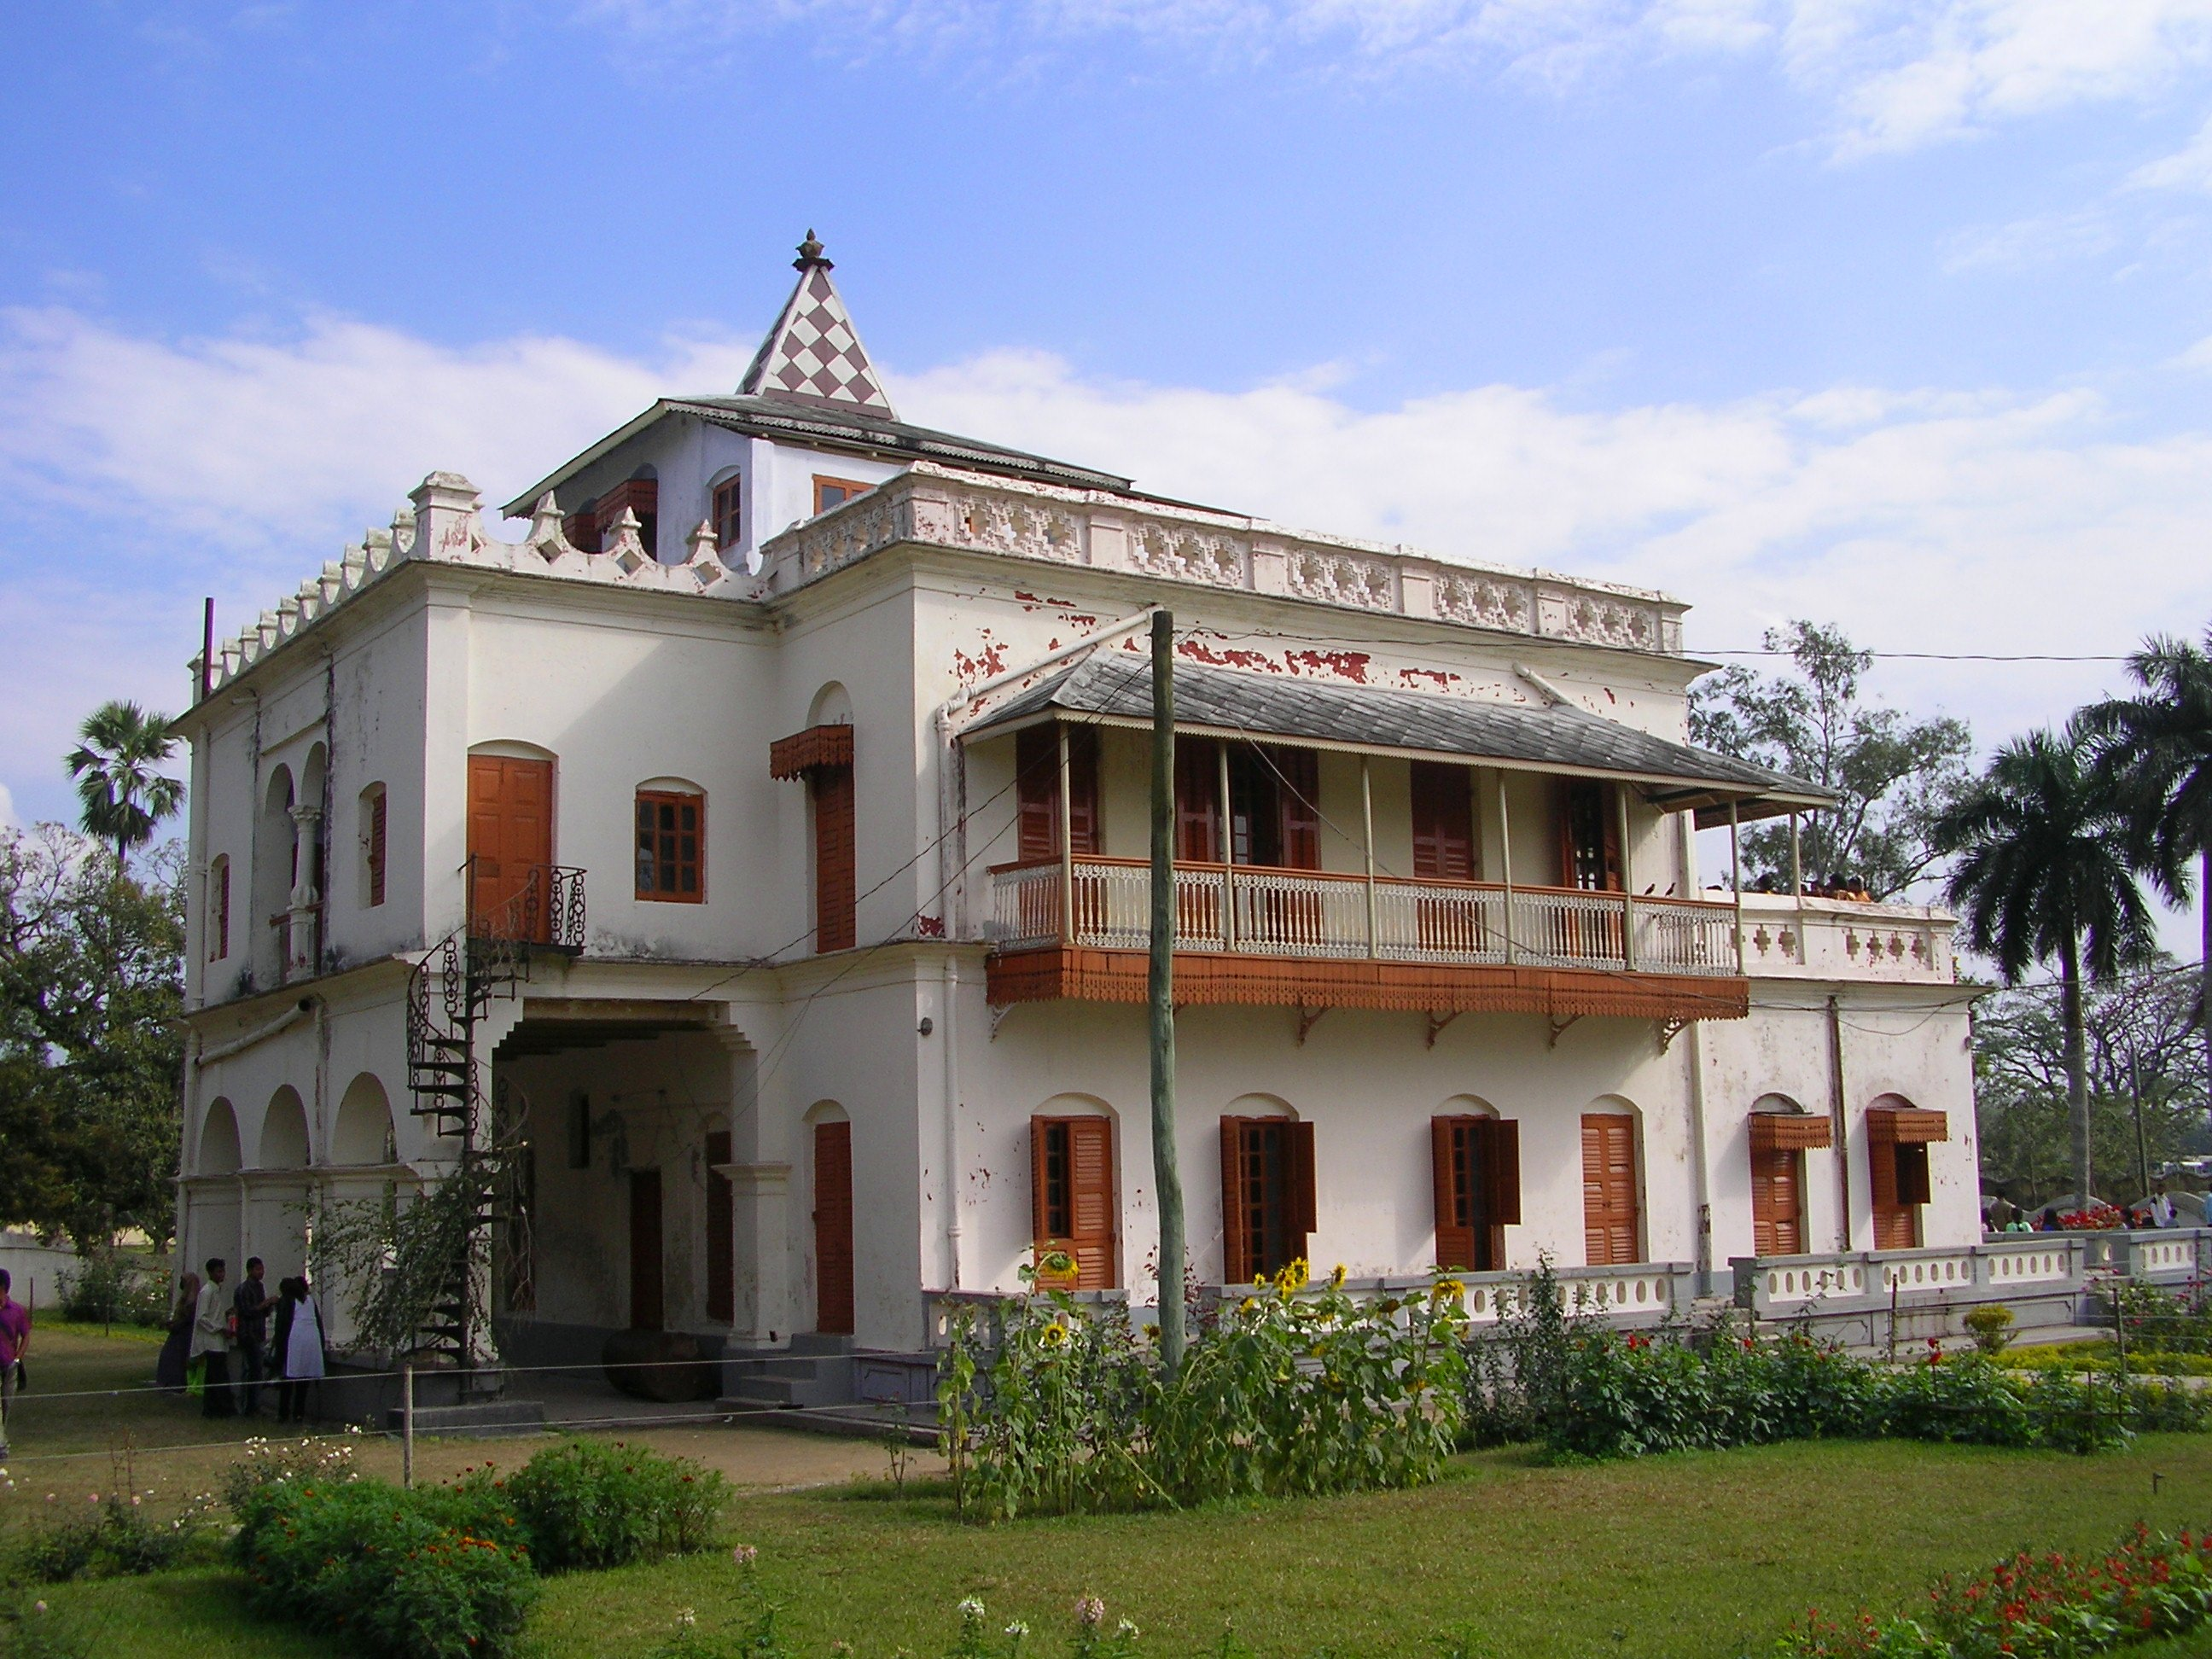 Shilaidaha Kuthibari is a historic place in Kumarkhali Upazila of Kushtia district in Bangladesh. Photo taken from Wikipedia.